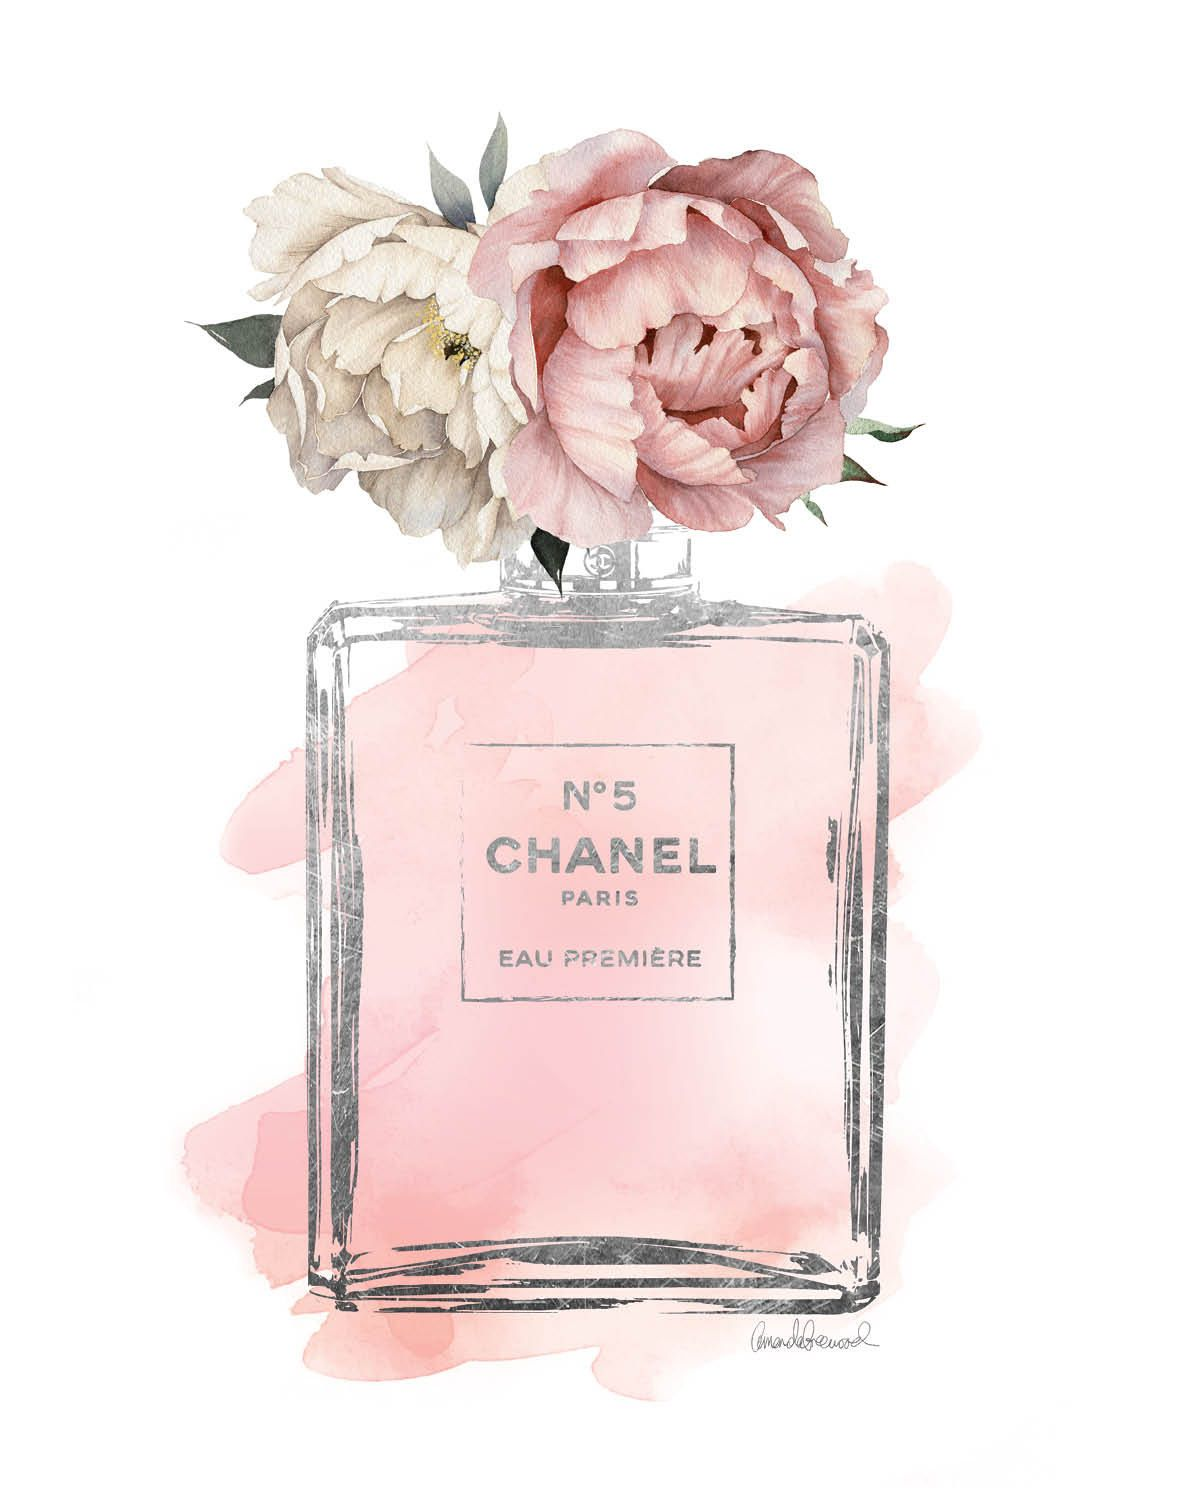 Chanel No5 Art 8x10 Pink Peony Watercolor Silver By